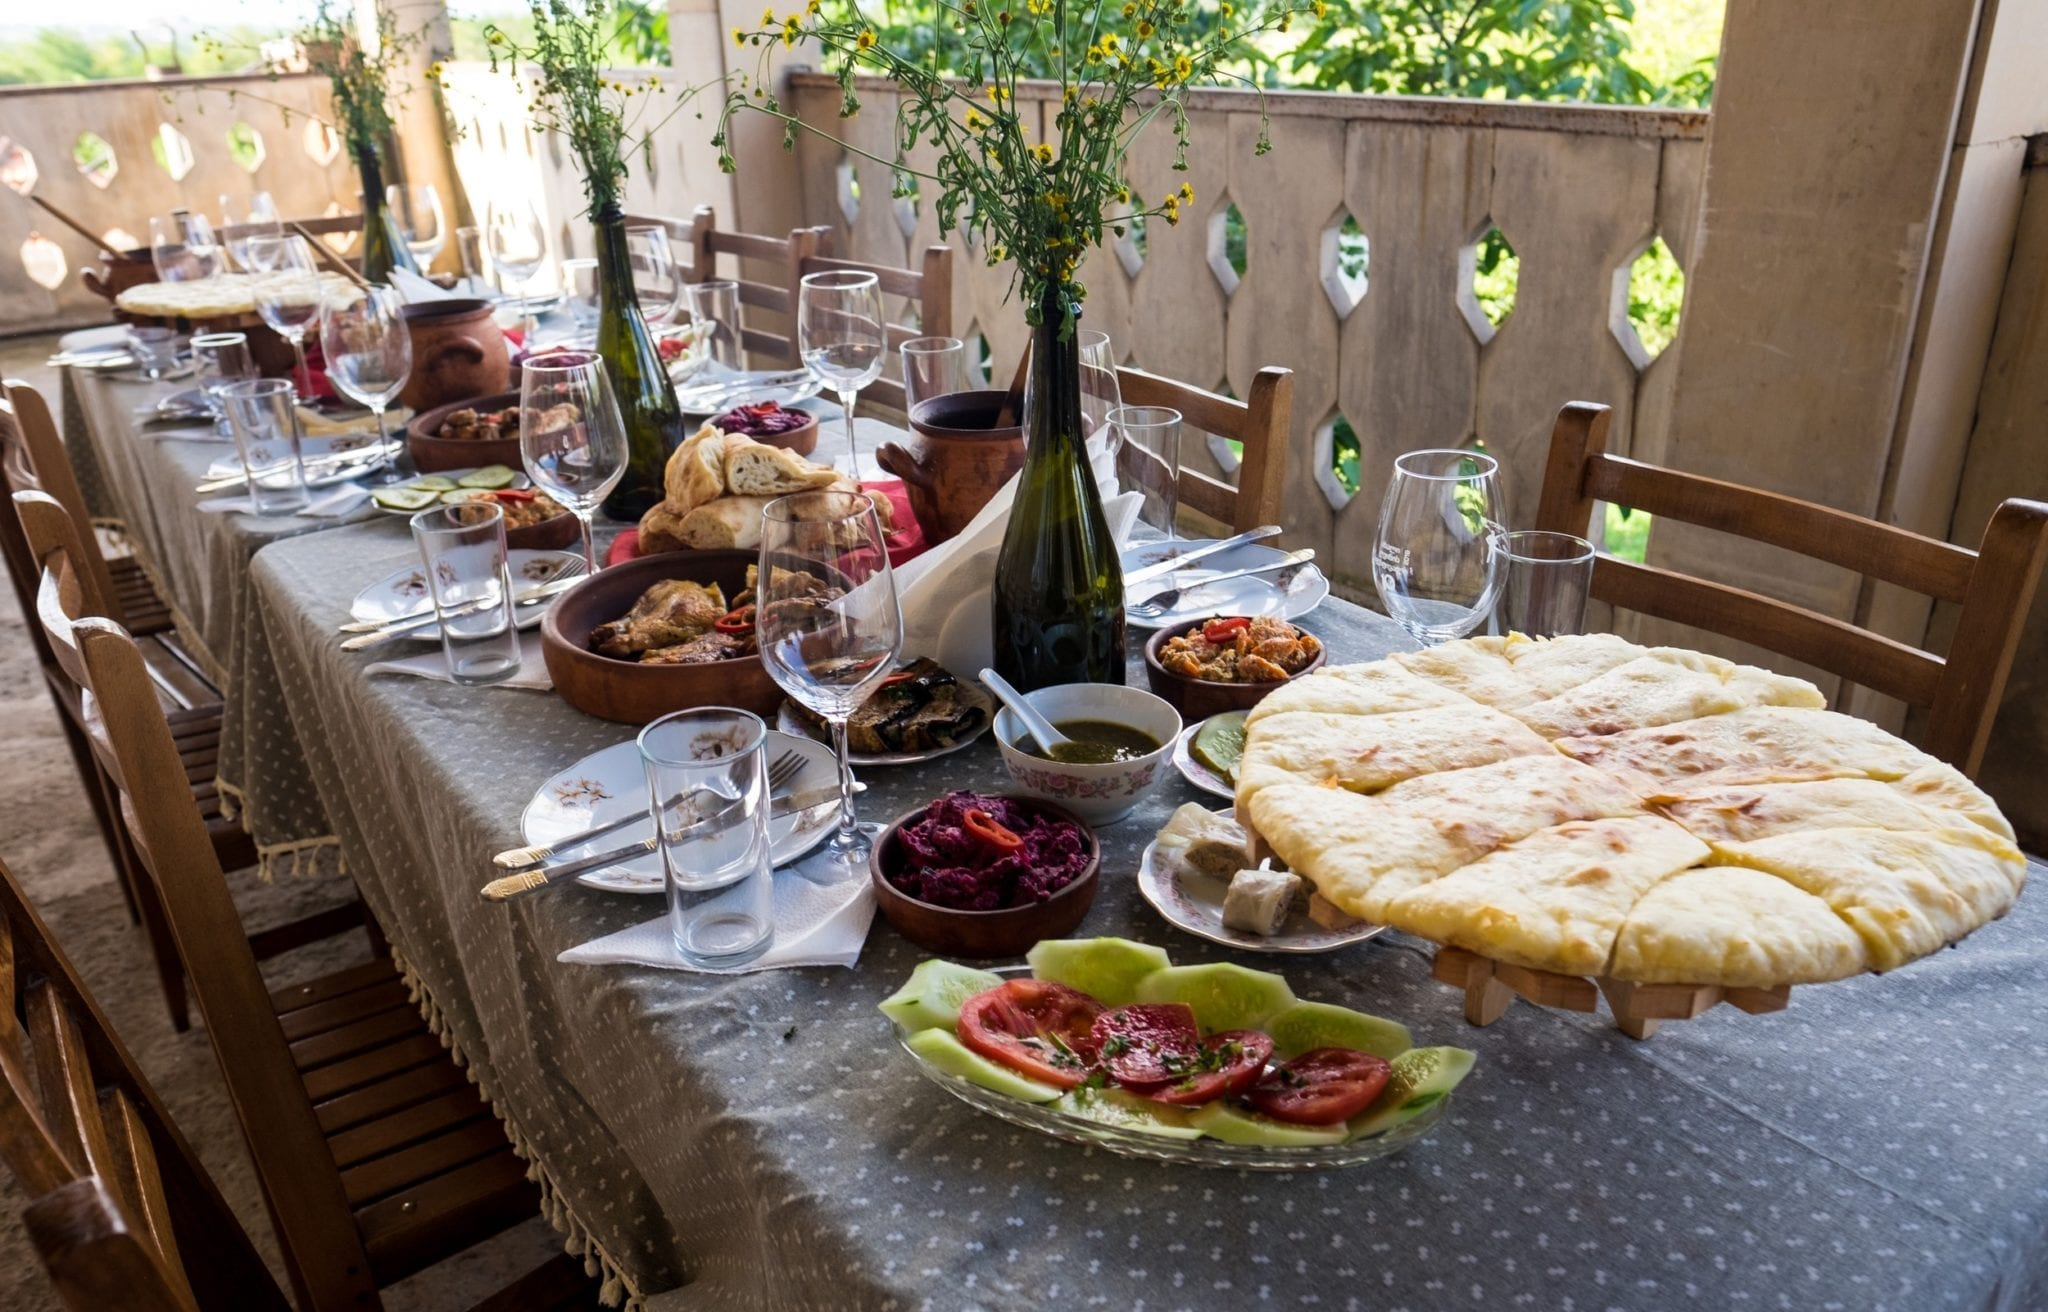 A table covered with plates of Georgian food: khachapuri (cheese pie), tomato walnut cucumber salad, roasted chicken, and lots of wine.